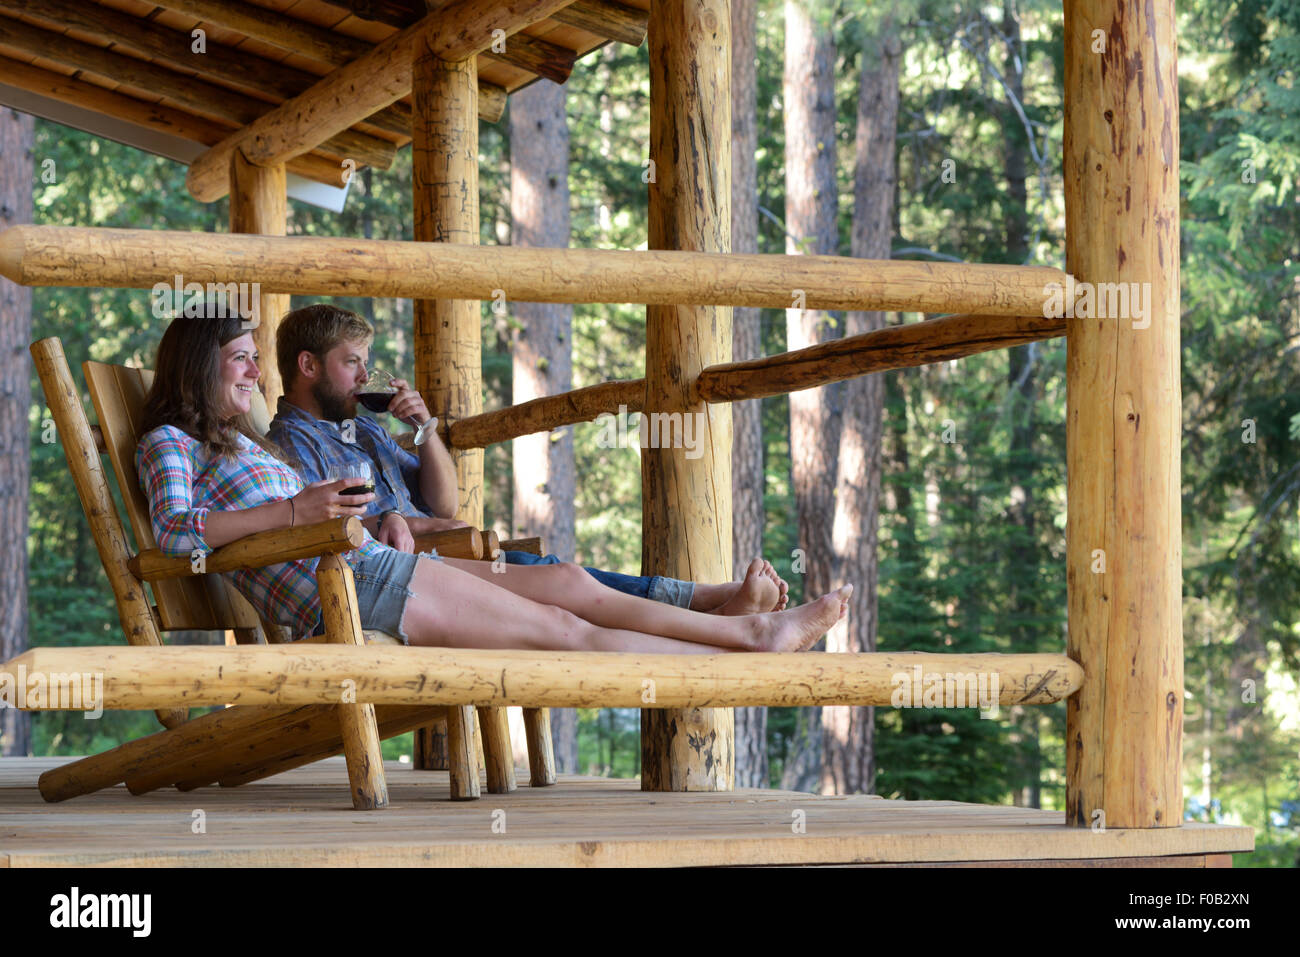 swing chair for porch reclining garden chairs the range couple enjoying a glass of wine on log cabin at stock photo, royalty free ...